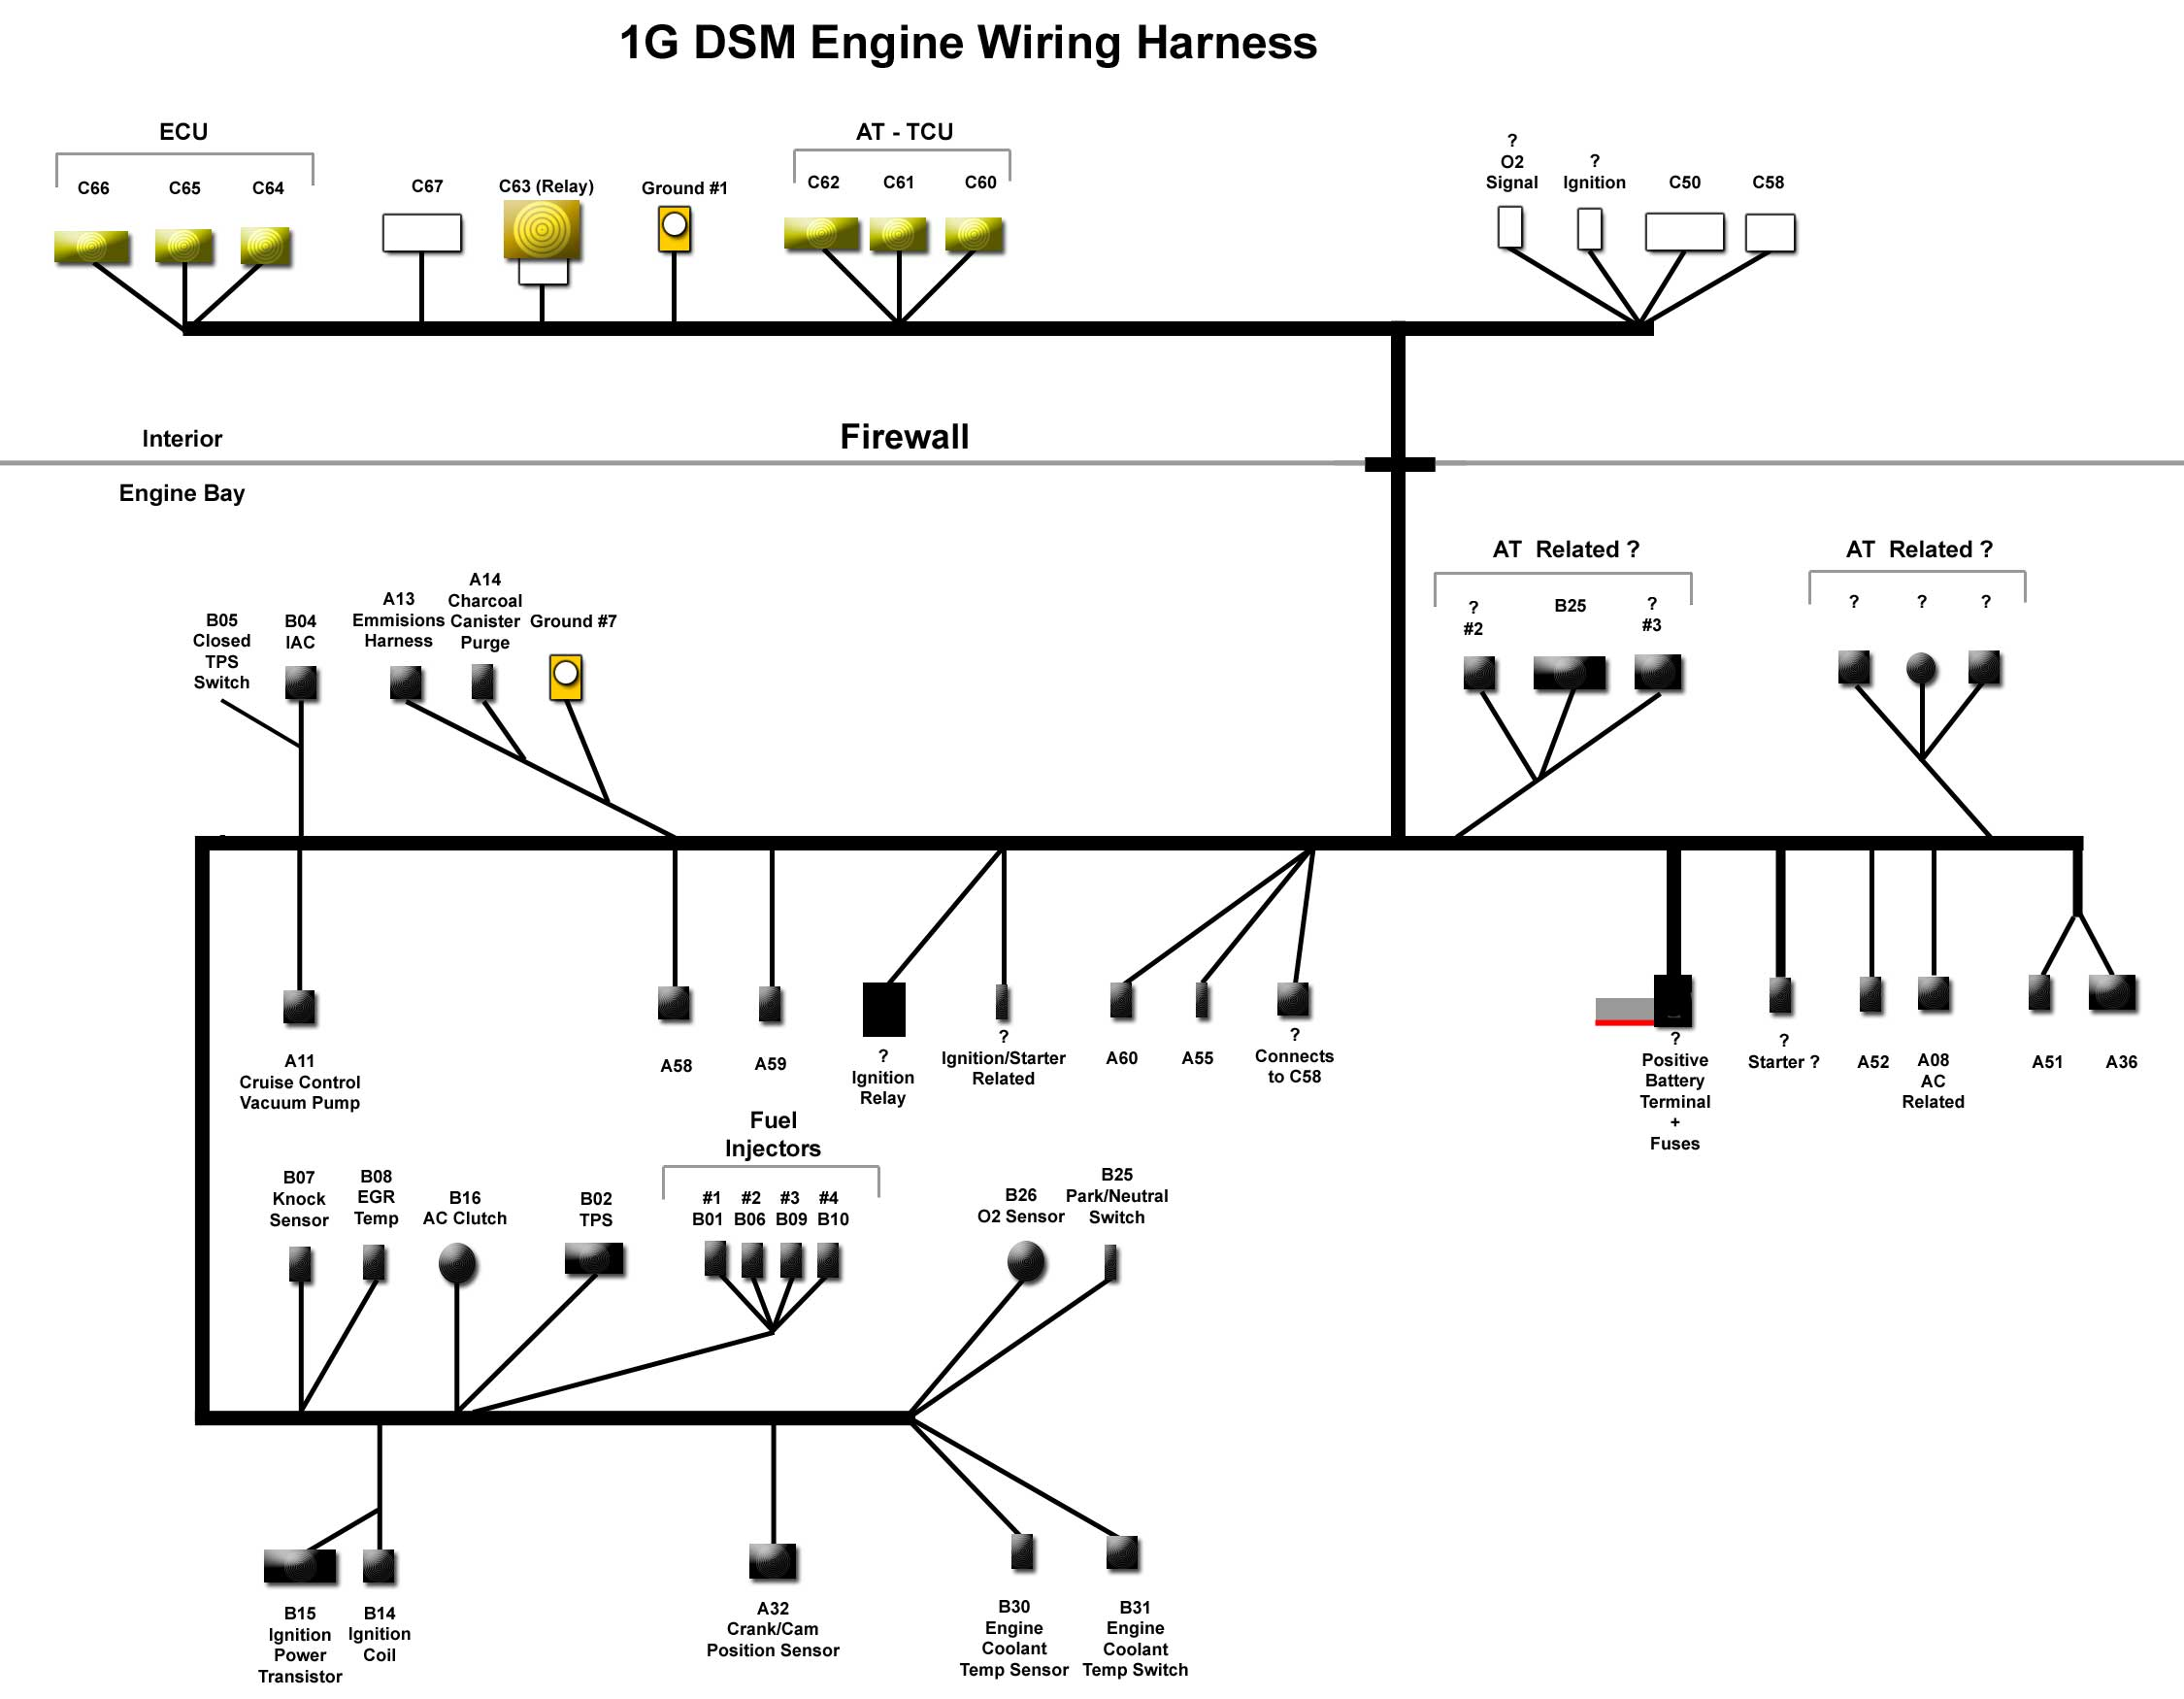 1G DSM EngineHarness harness wiring diagram jeep wrangler wiring harness diagram \u2022 free  at fashall.co